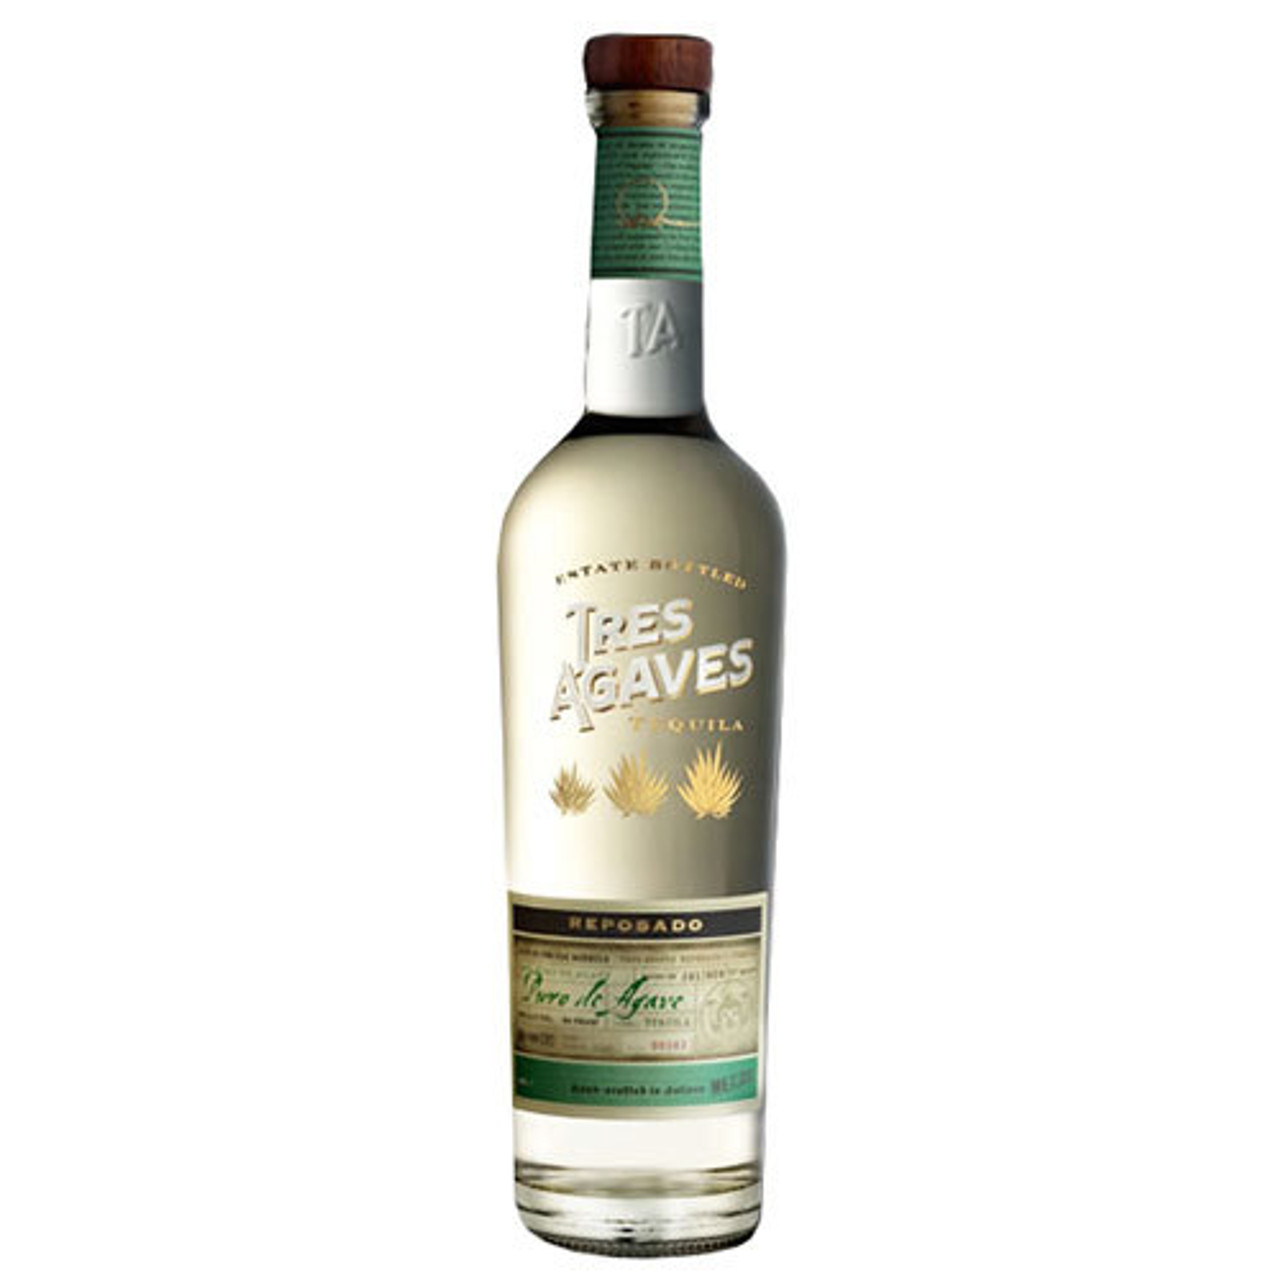 100% de Agave. Estate Grown. Aged for ~9 months in repurposed Bourbon and Tennessee Whiskey barrels. Balanced taste of baked tropical fruits, with hints of citrus, spice, and complementary barrel notes. Ideally balanced and perfect for sipping or mixing.